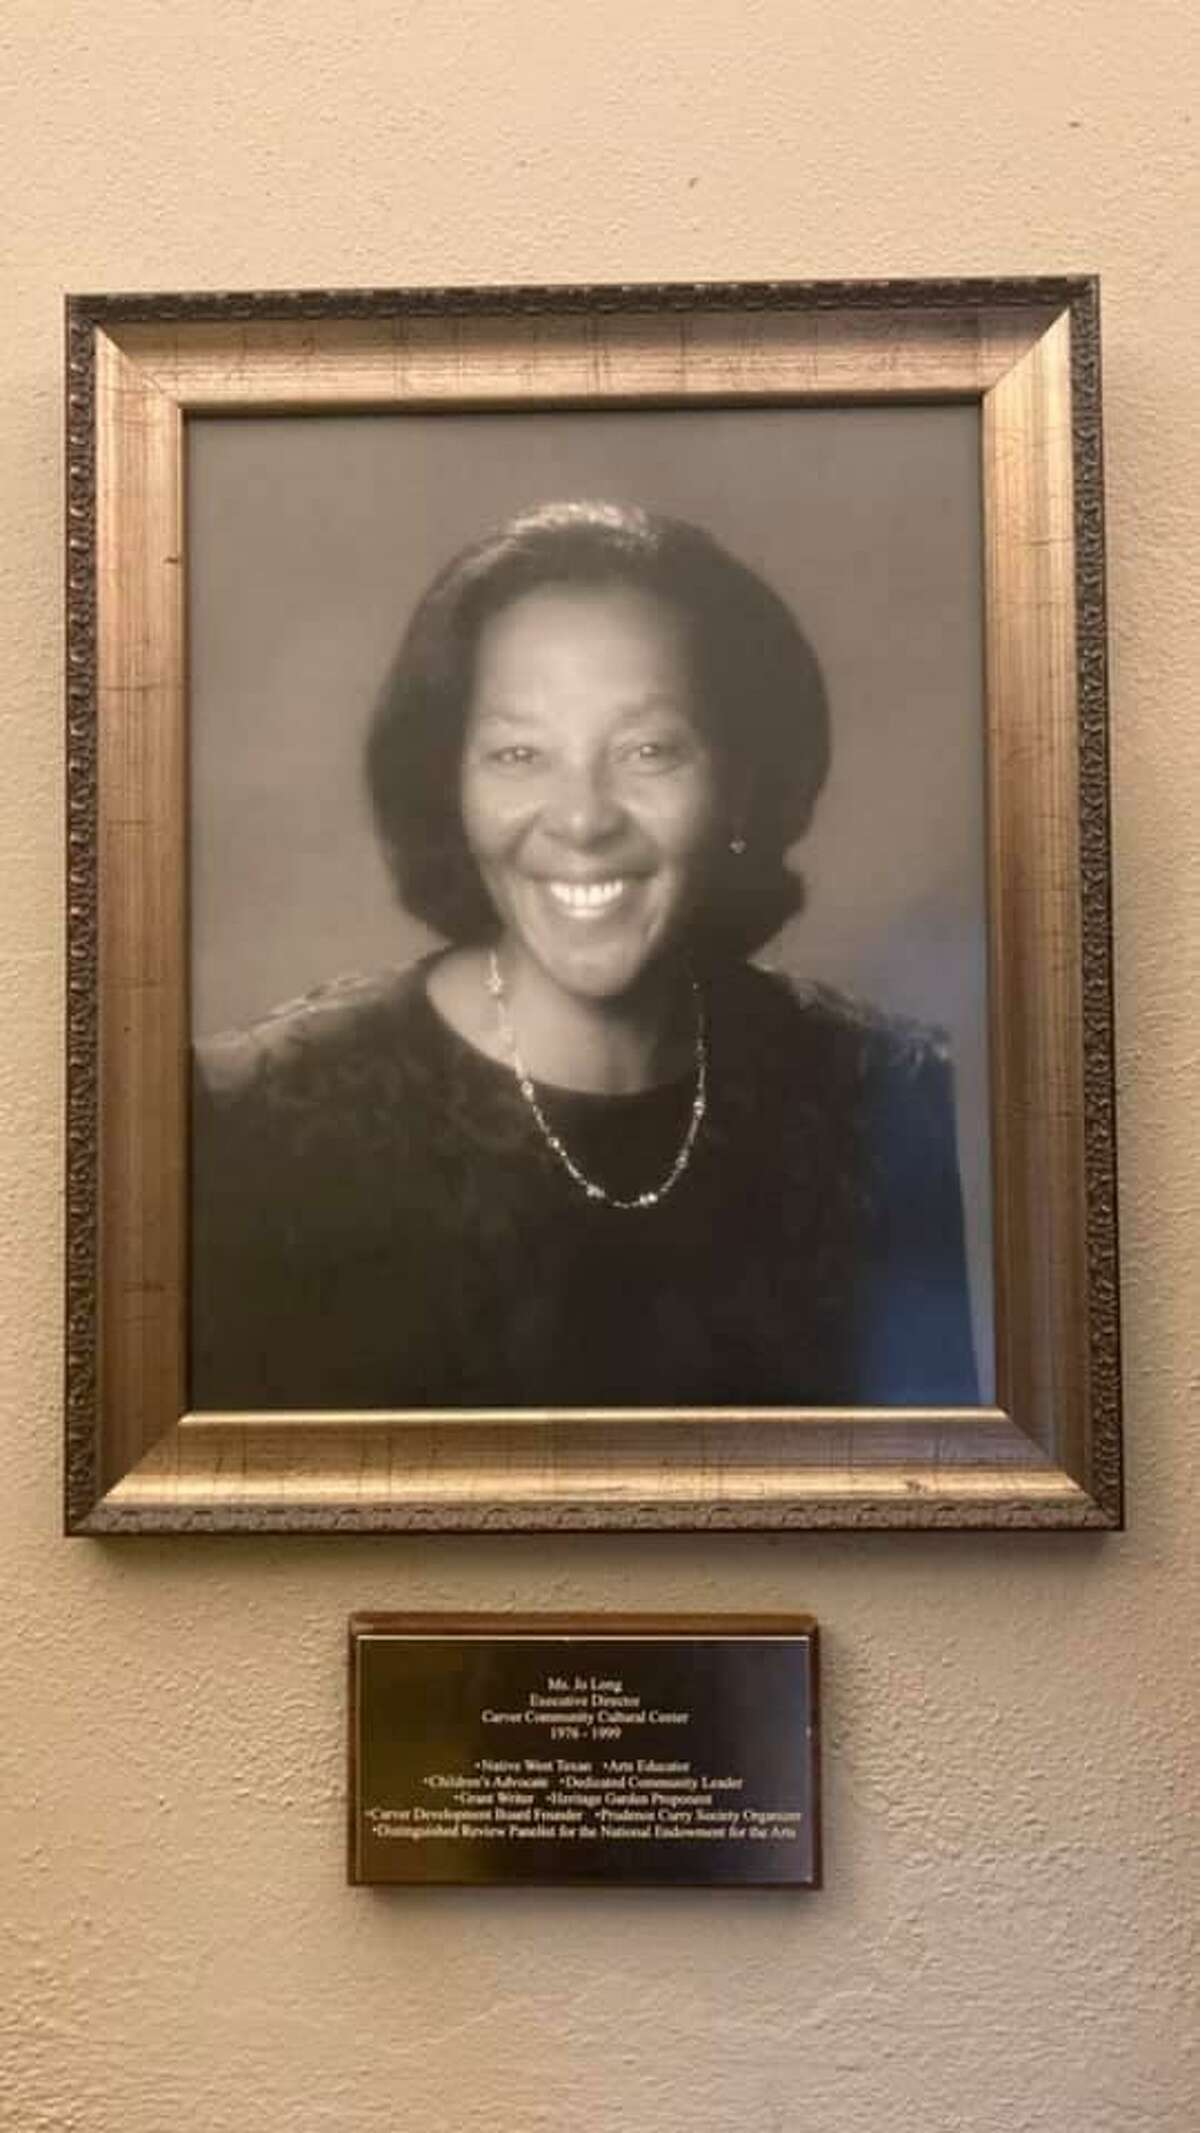 The Carver Community Cultural Center on Oct. 13, 2021, said on social media the death of Jo Long of the Jo Long Theatre for the Performing Arts.